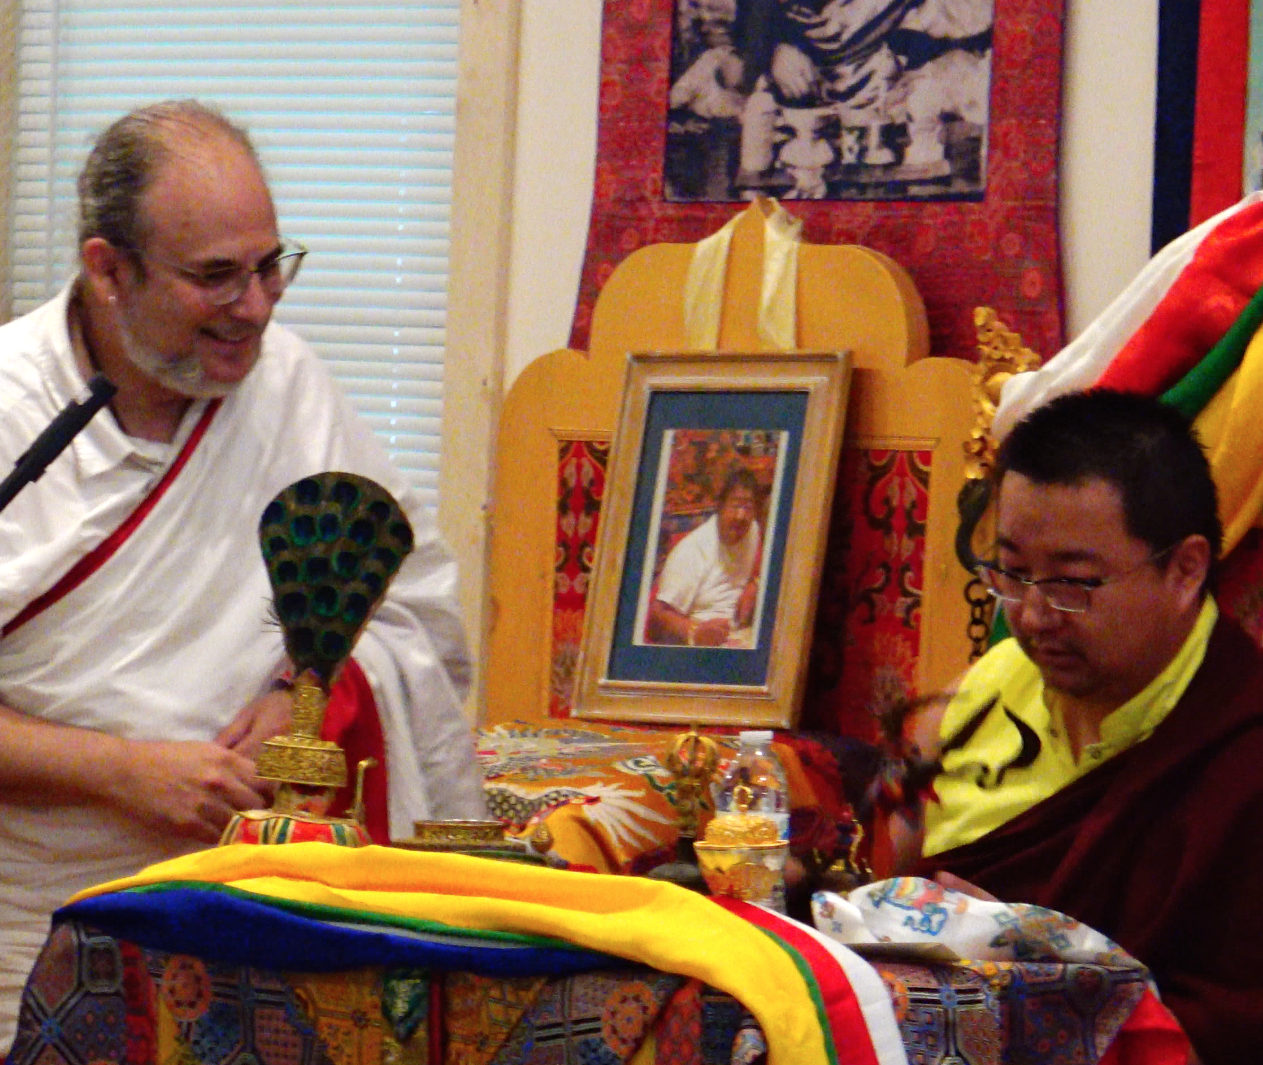 Yangsi Rinpoche inspects an ancient Katvanga from the time of Virupa